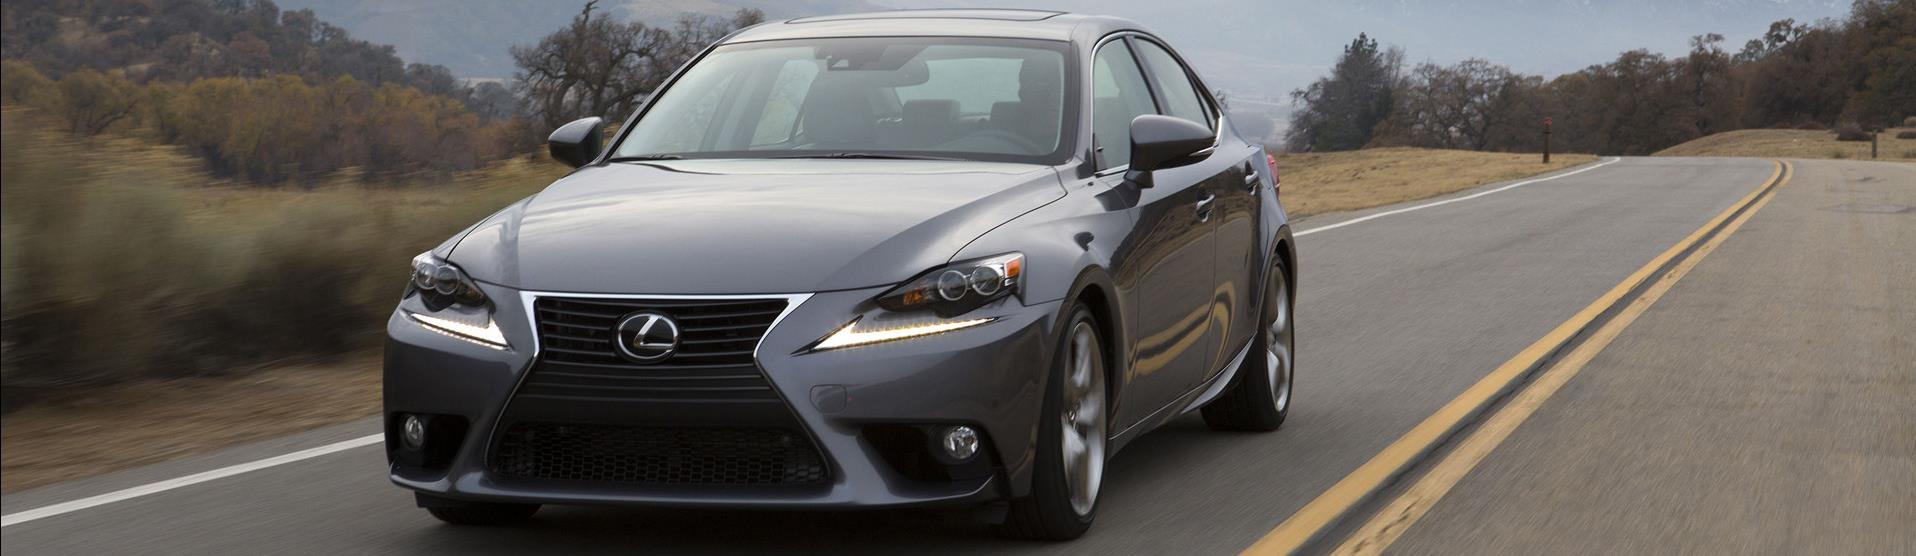 Regular updates of the best used car deals in Yakima